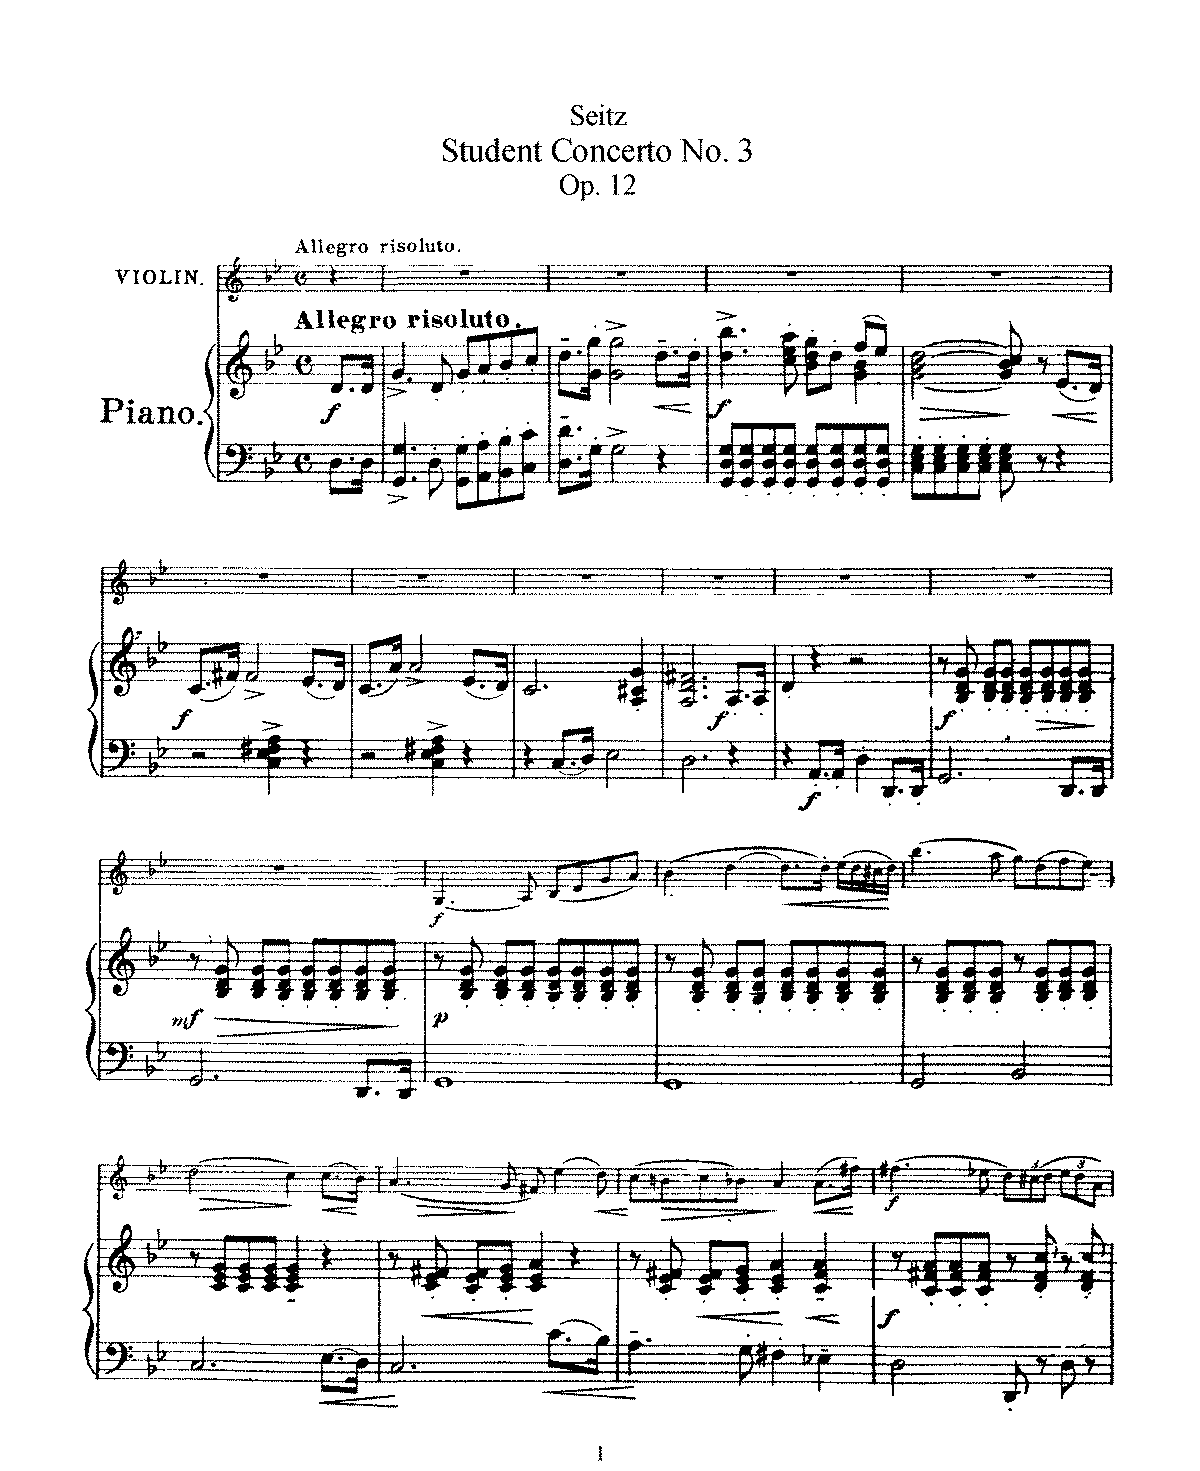 PMLP155524-FSeitz Student Concerto No.3 for Violin and Piano Op.12 Piano Score.pdf